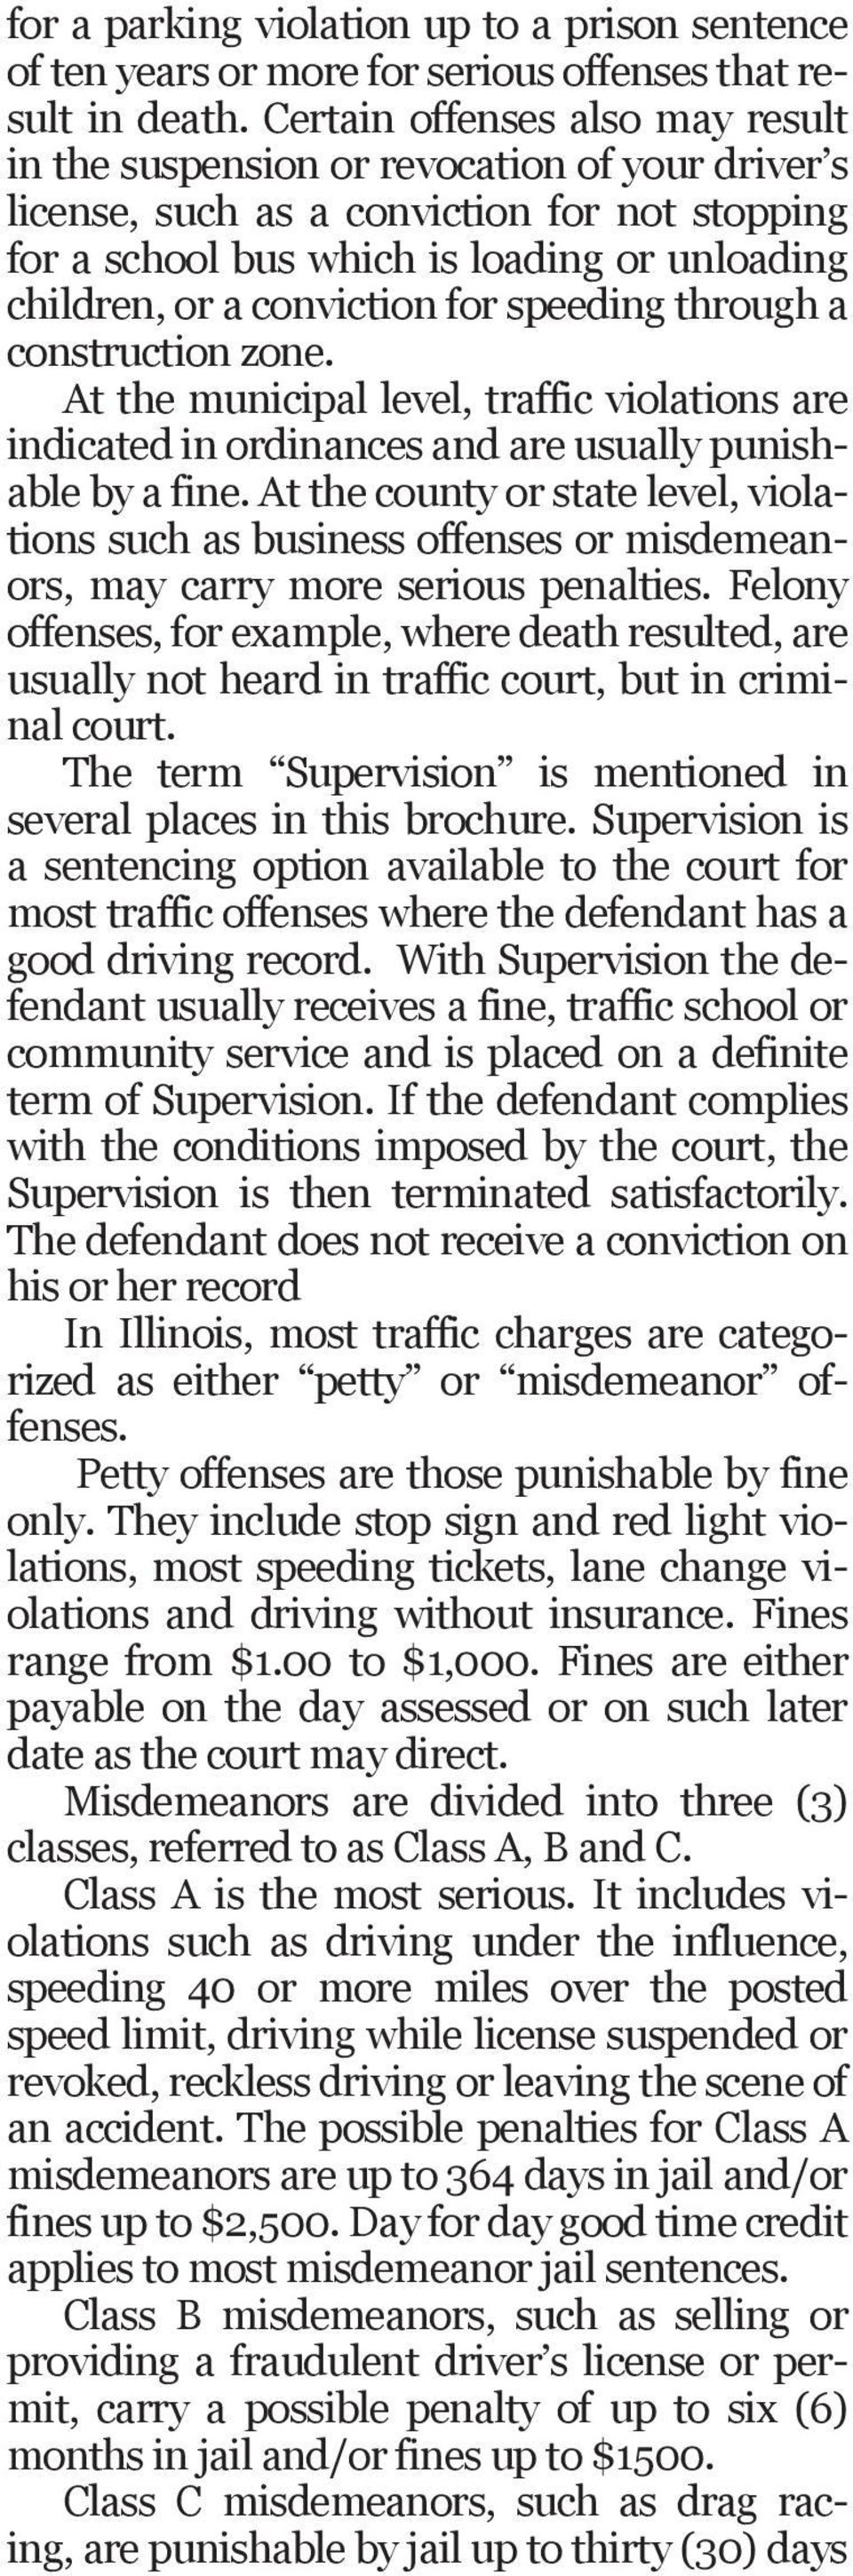 conviction for speeding through a construction zone. At the municipal level, traffic violations are indicated in ordinances and are usually punishable by a fine.